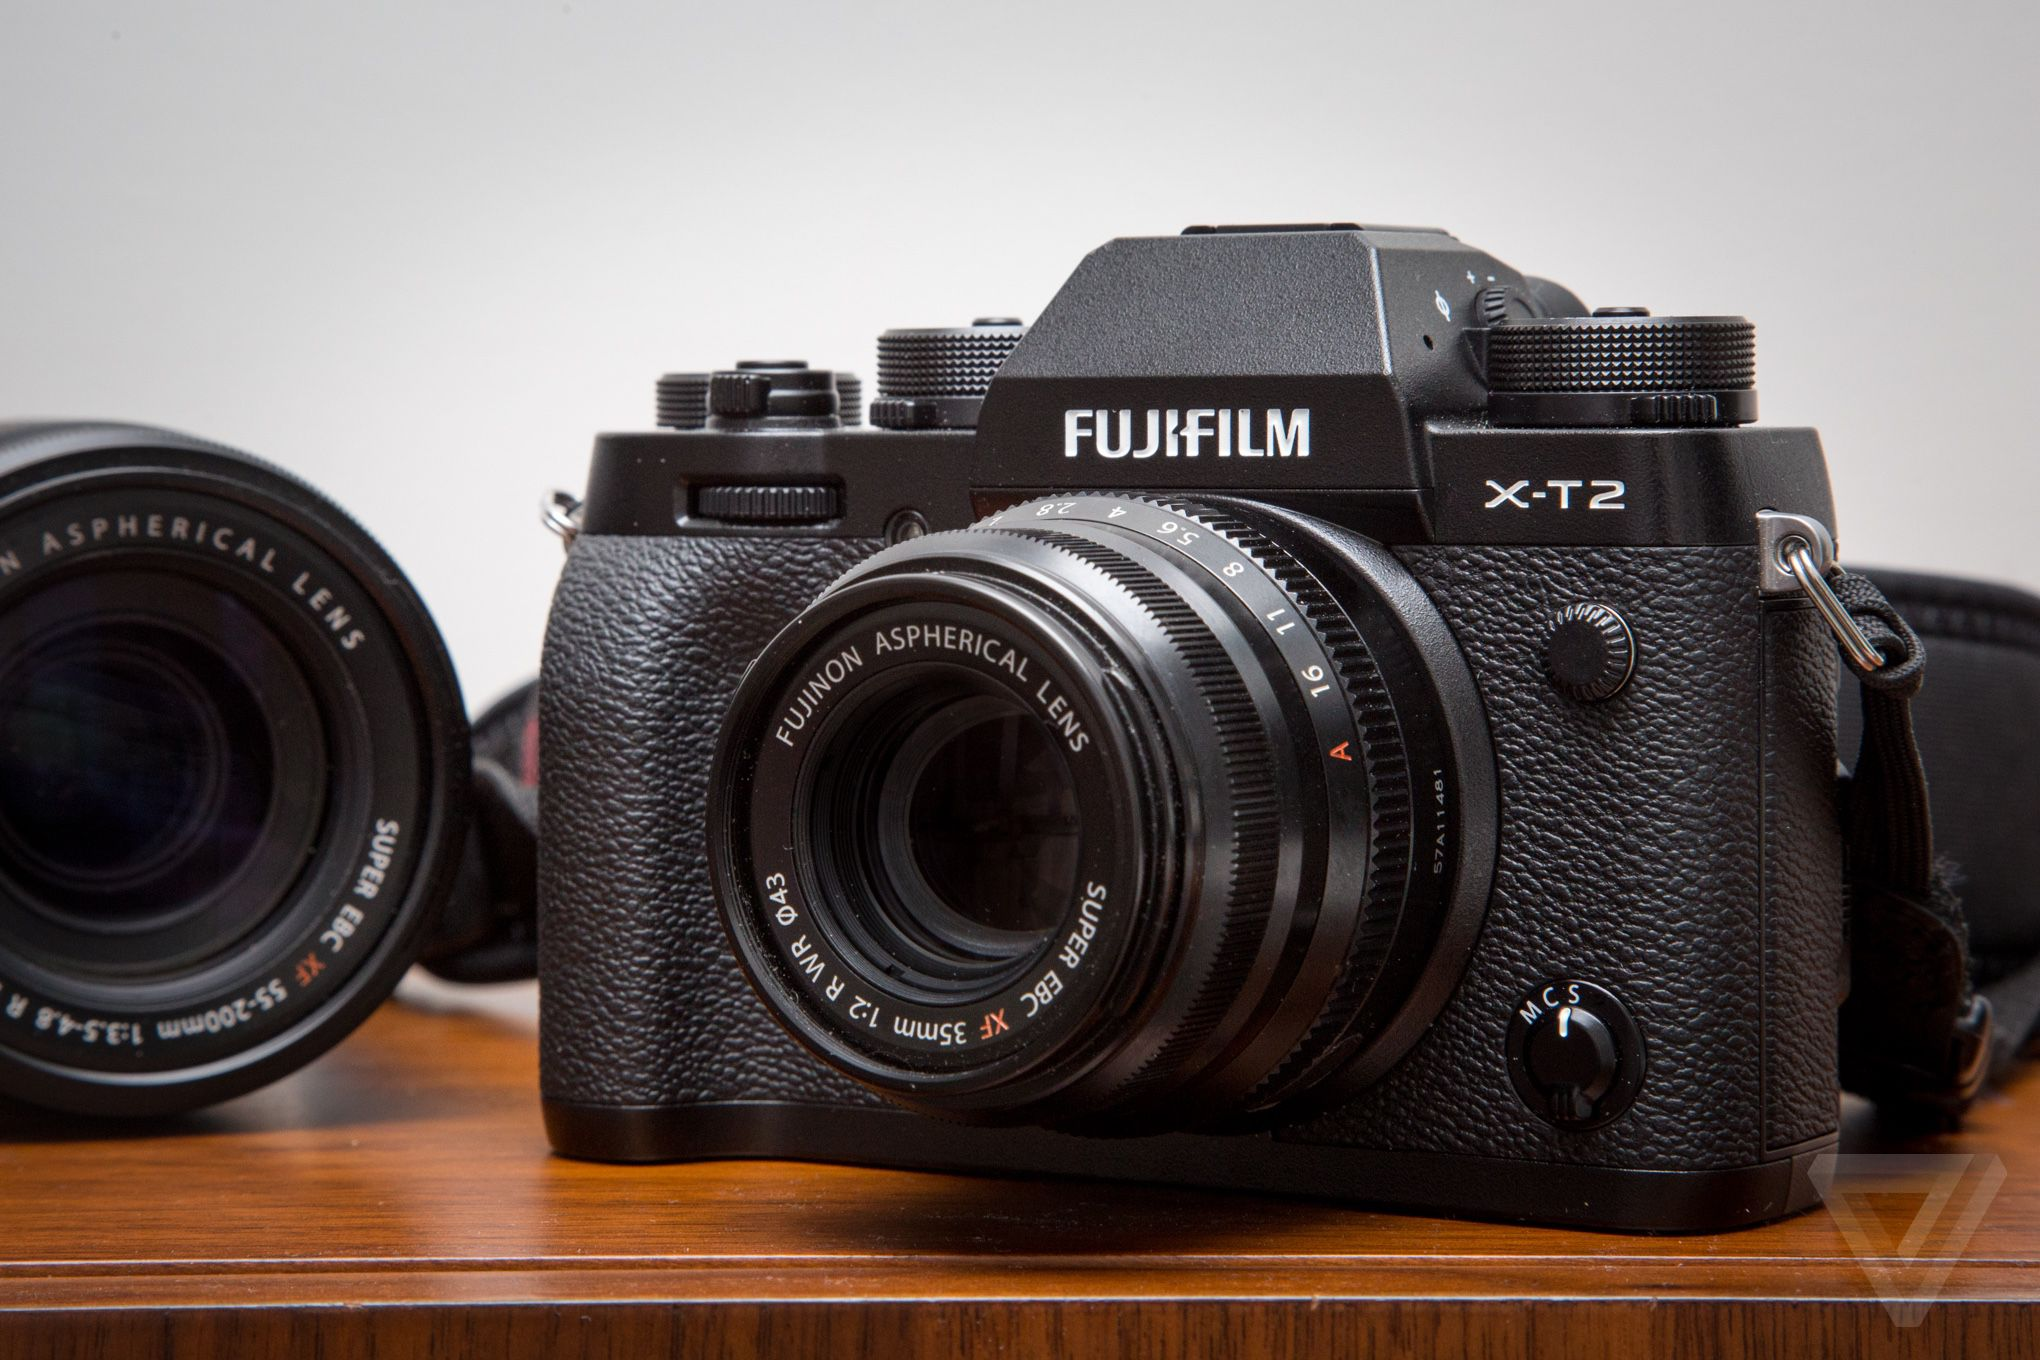 Fujifilm X-T2 review: for the love of photography | The Verge